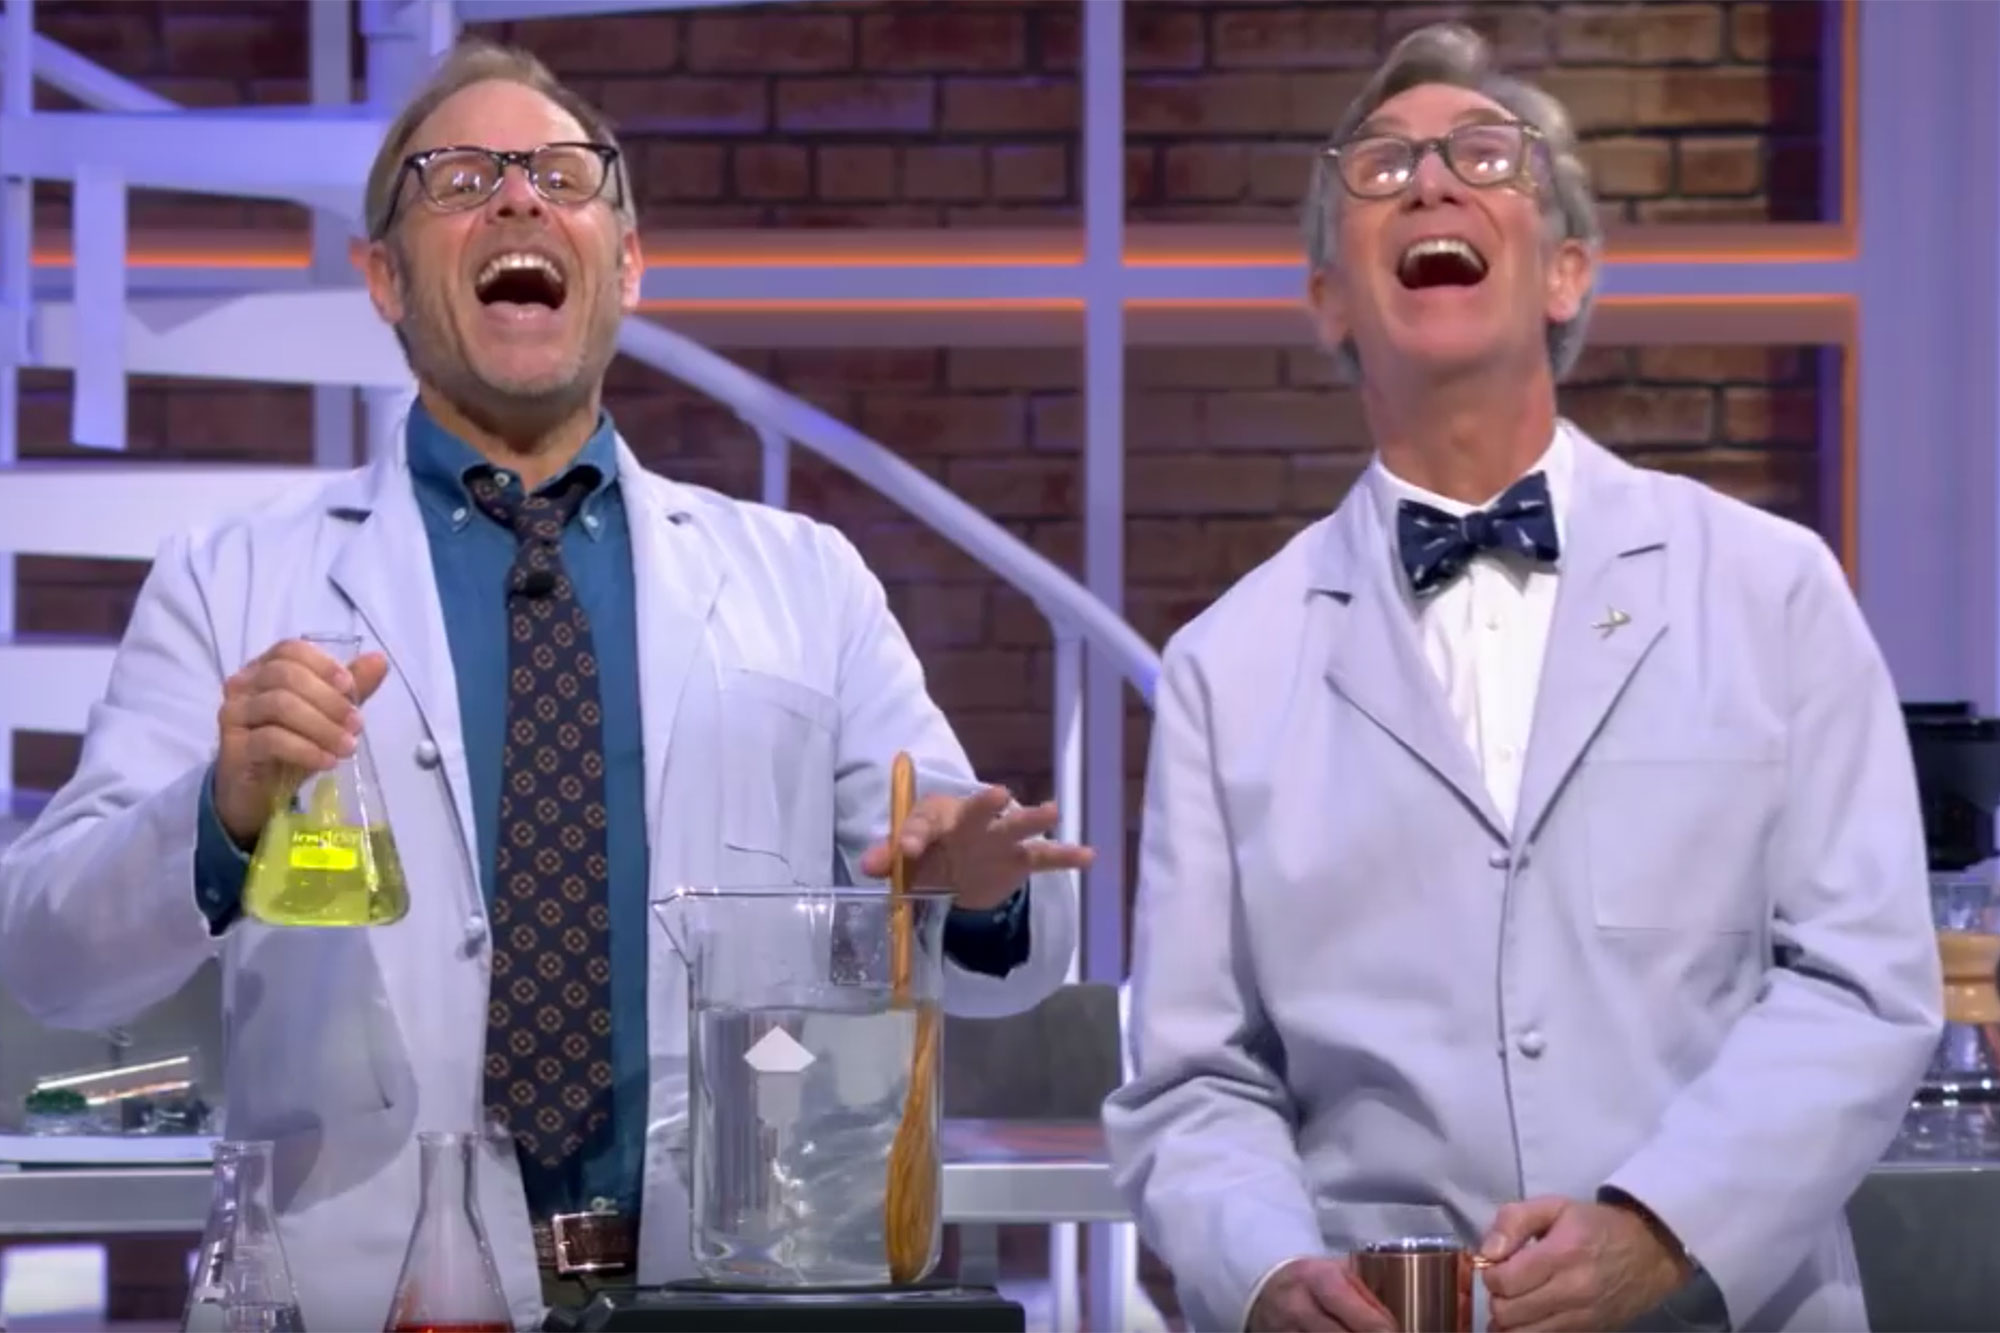 Alton Brown Says He Was 'Deemed Not Smart Enough' to Be a Guest on Bill Nye's Netflix Show